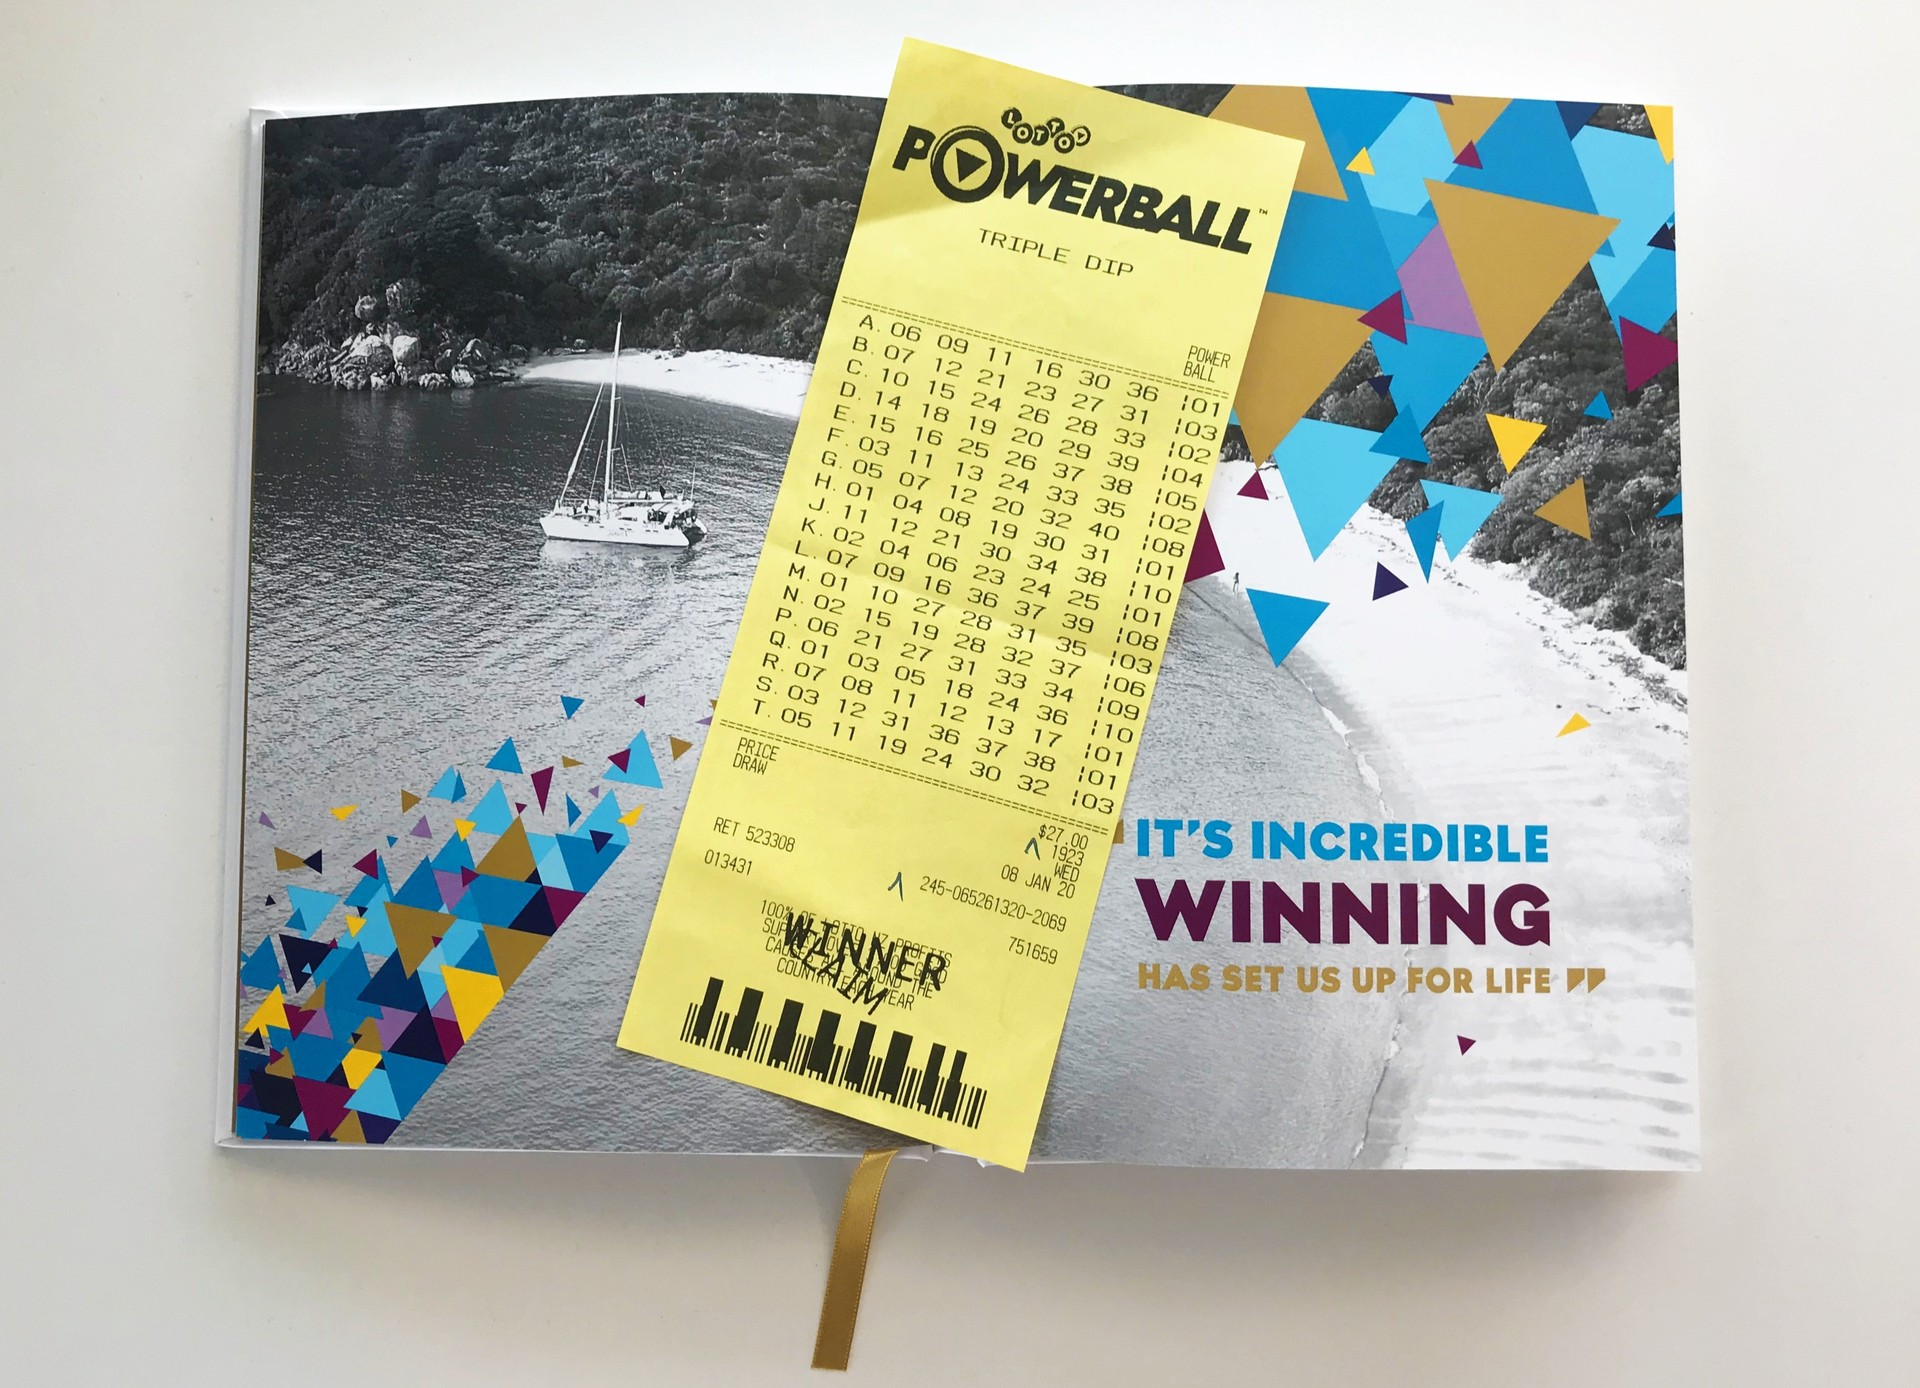 Northland's Lotto luck continues